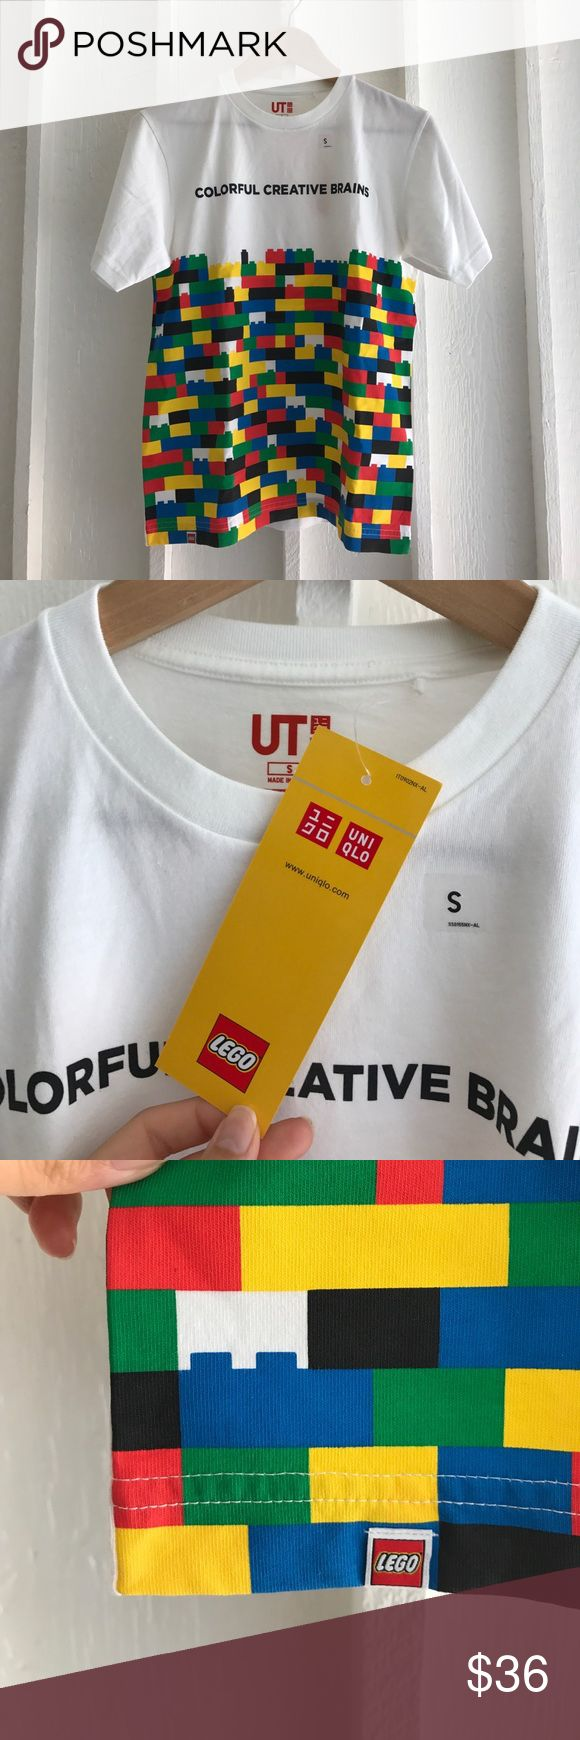 "Uniqlo x Lego collaboration T shirts ""Colorful creative brains"" lego T shirts Uniqlo Tops Tees - Short Sleeve"